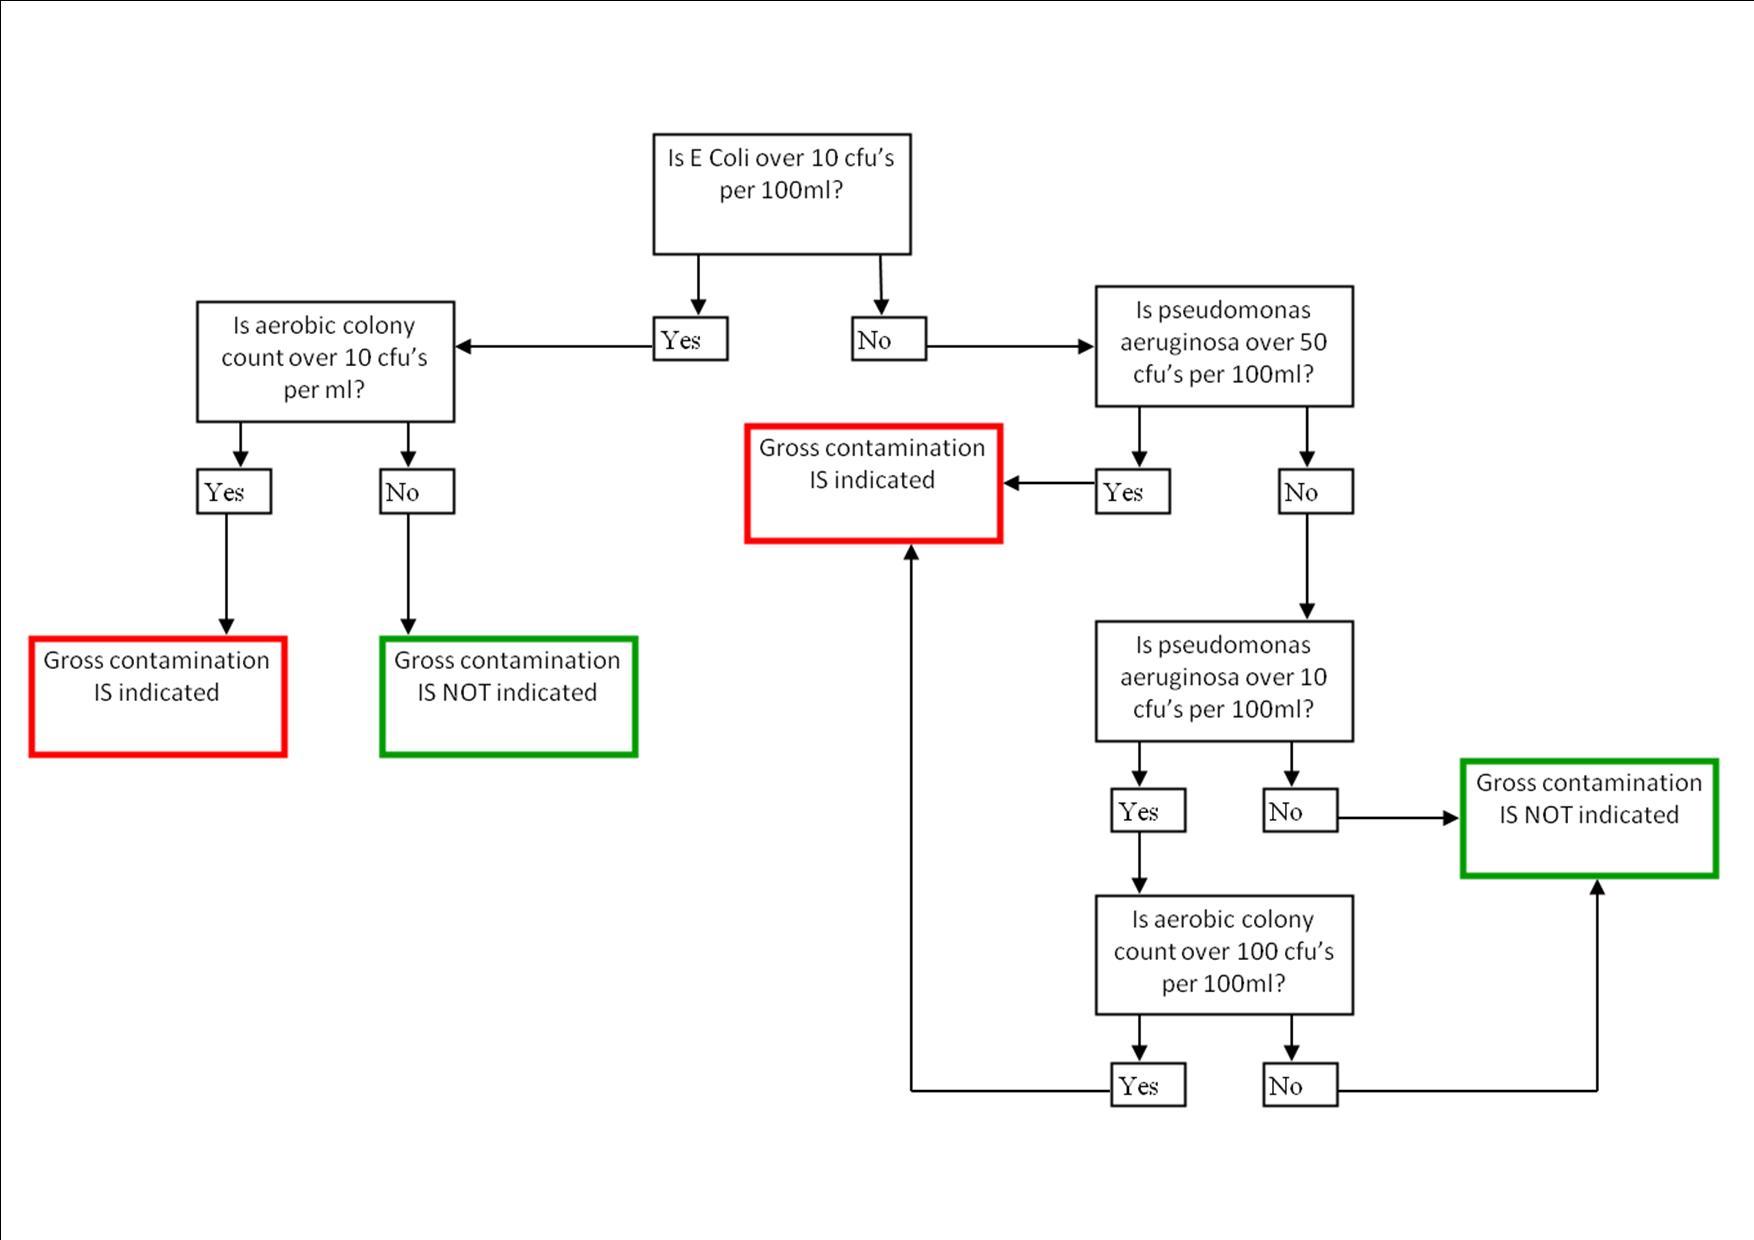 microbiological contamination in swimming pools flow chart